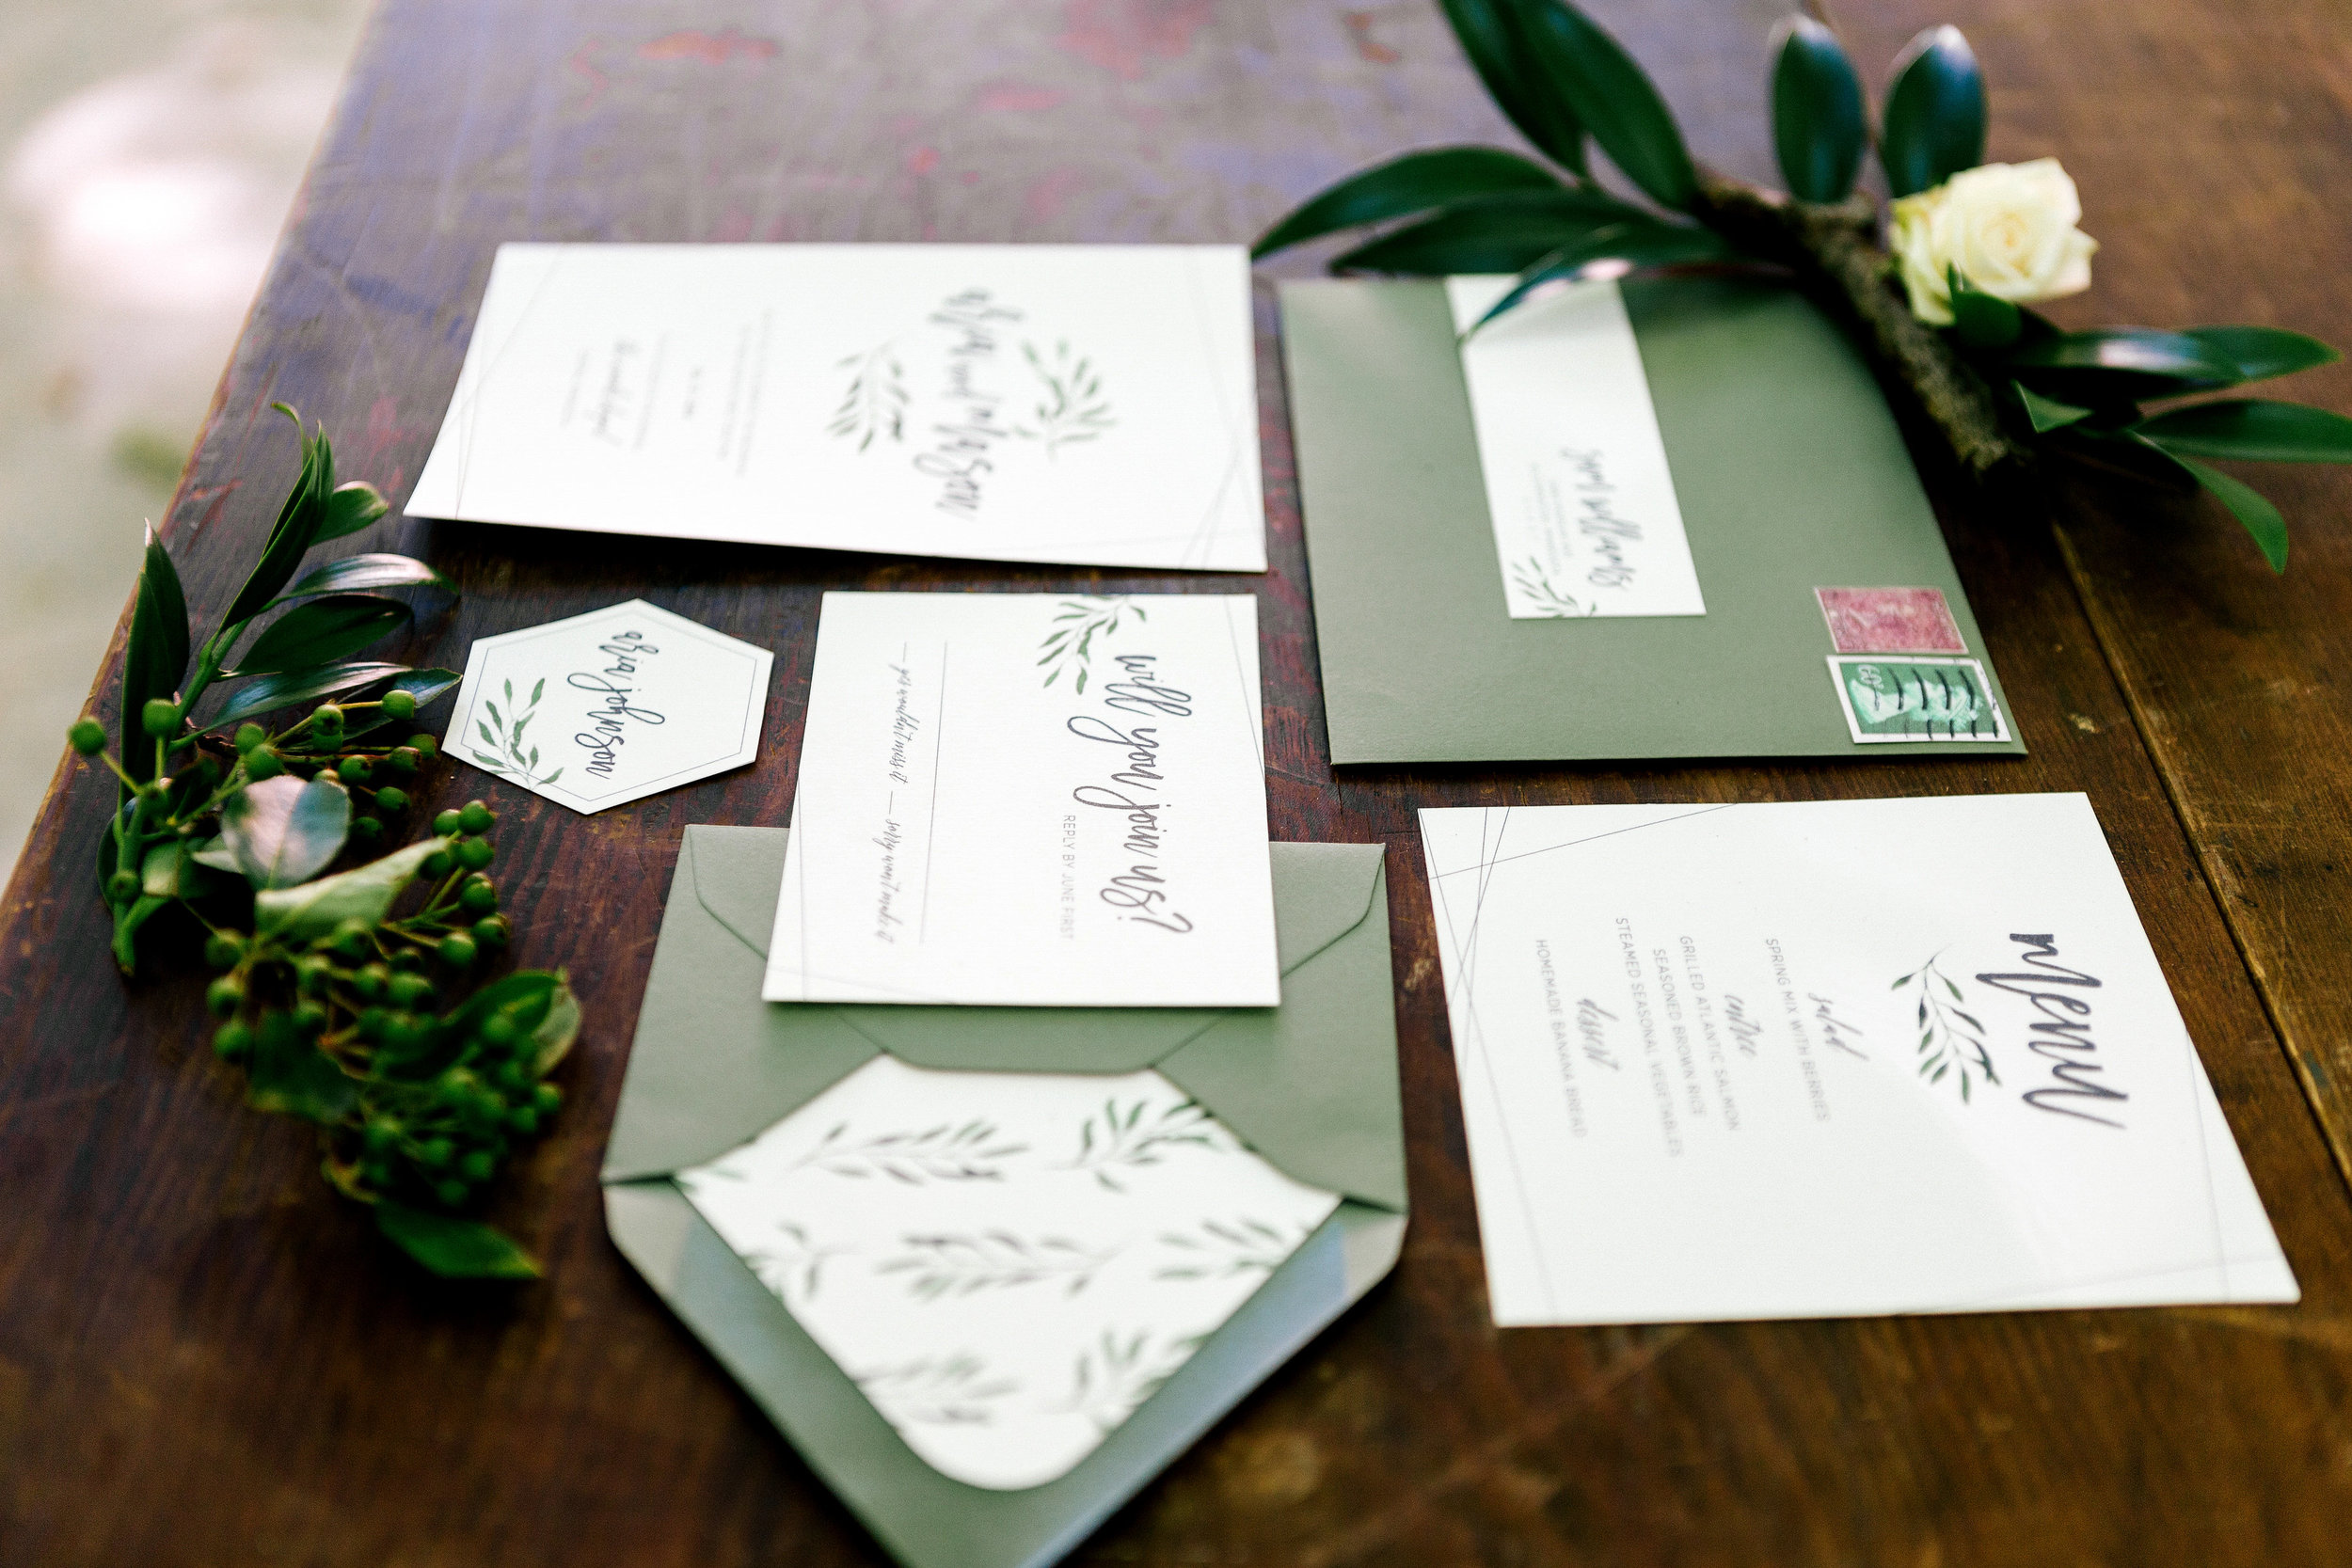 Allison_Hopperstad_Photography_Acowsay_Wedding_Paper_Designs.JPG